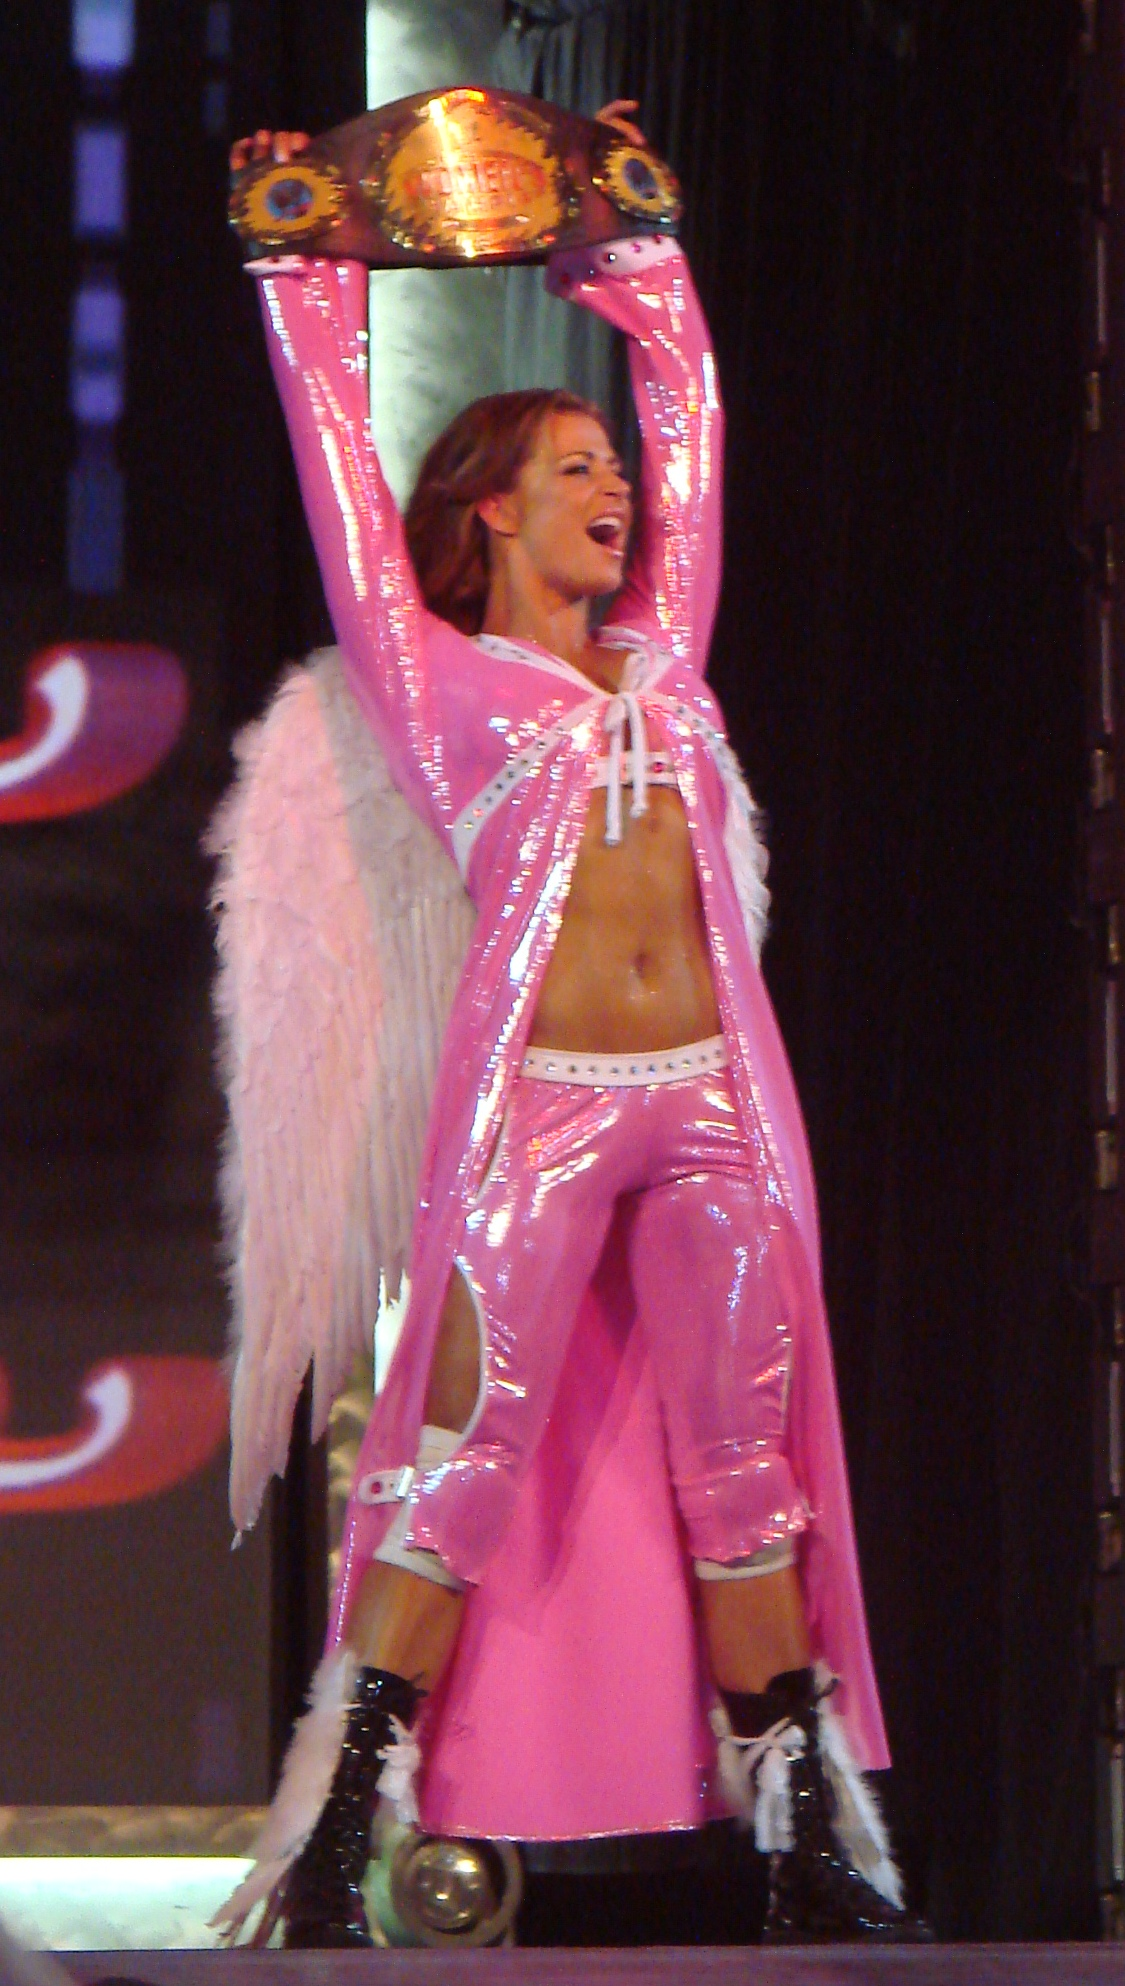 Candice_Michelle_No_Mercy_2007.jpg